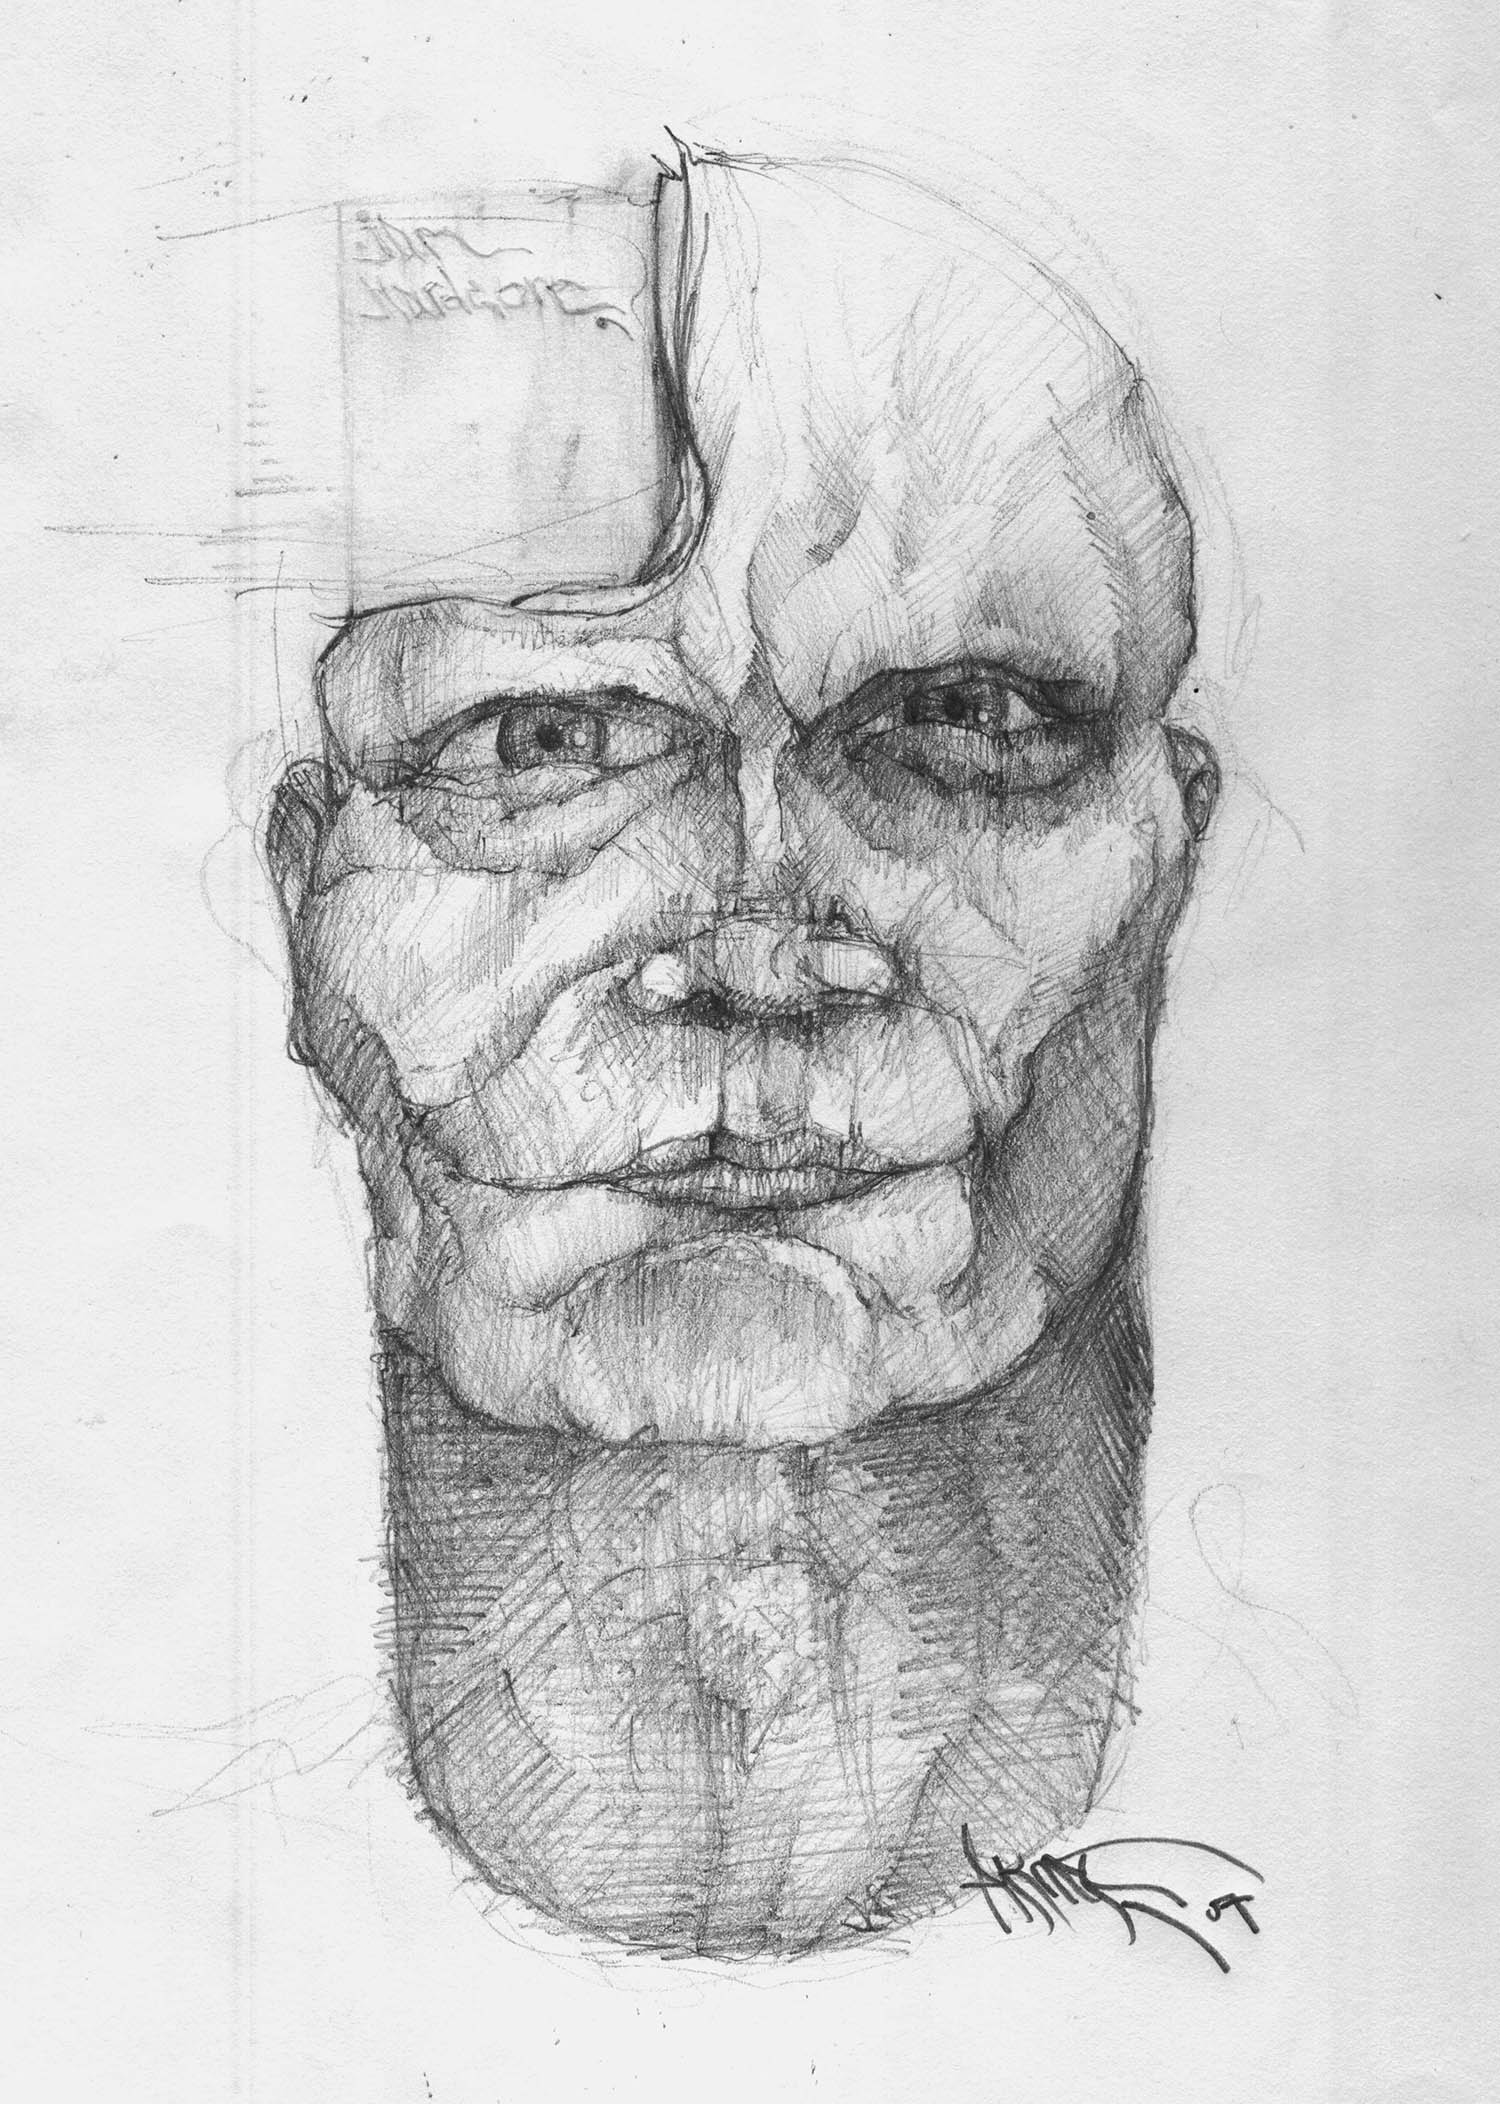 Hardcore Man Portait Sketch by Artist Kostas Gogas